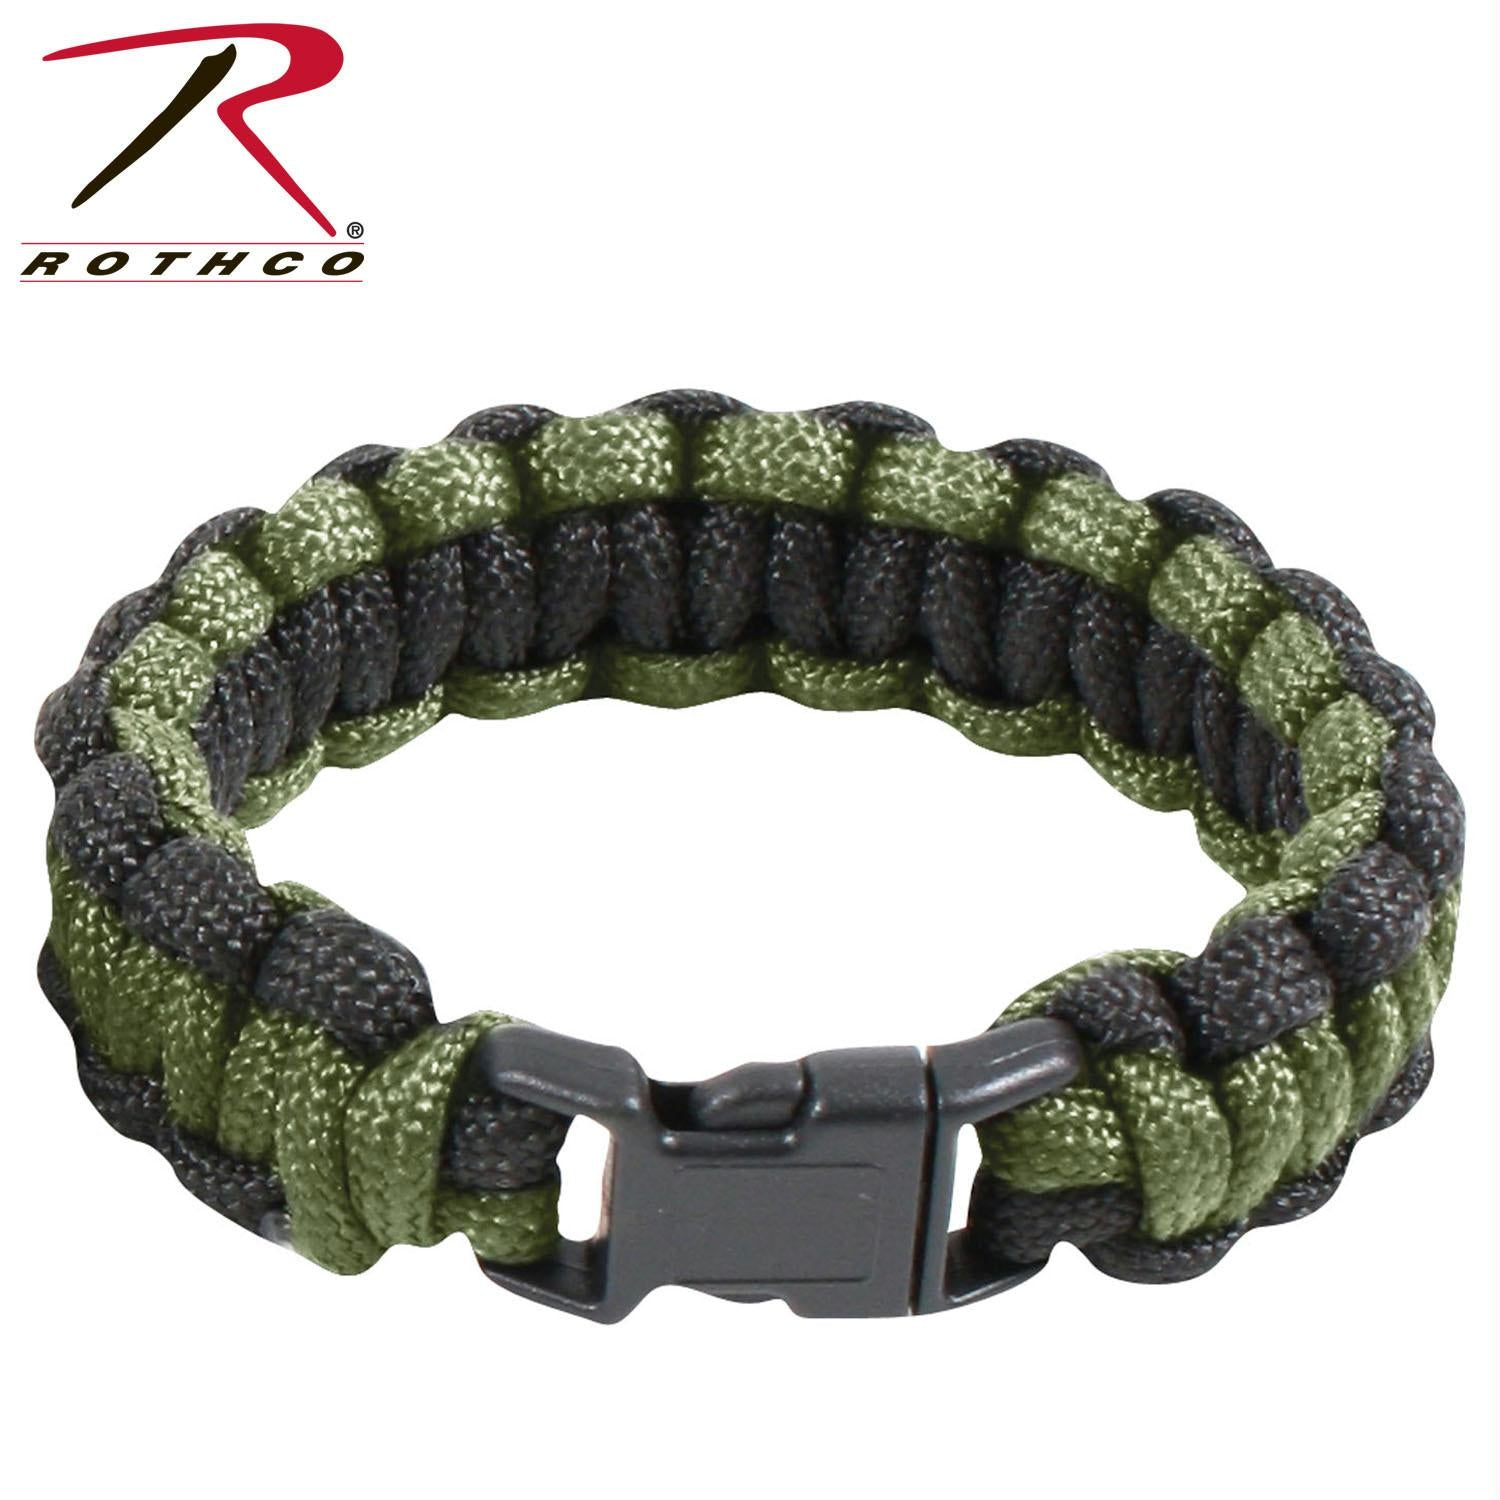 Rothco Two-Tone Paracord Bracelet - Olive Drab / Black / 10 Inches